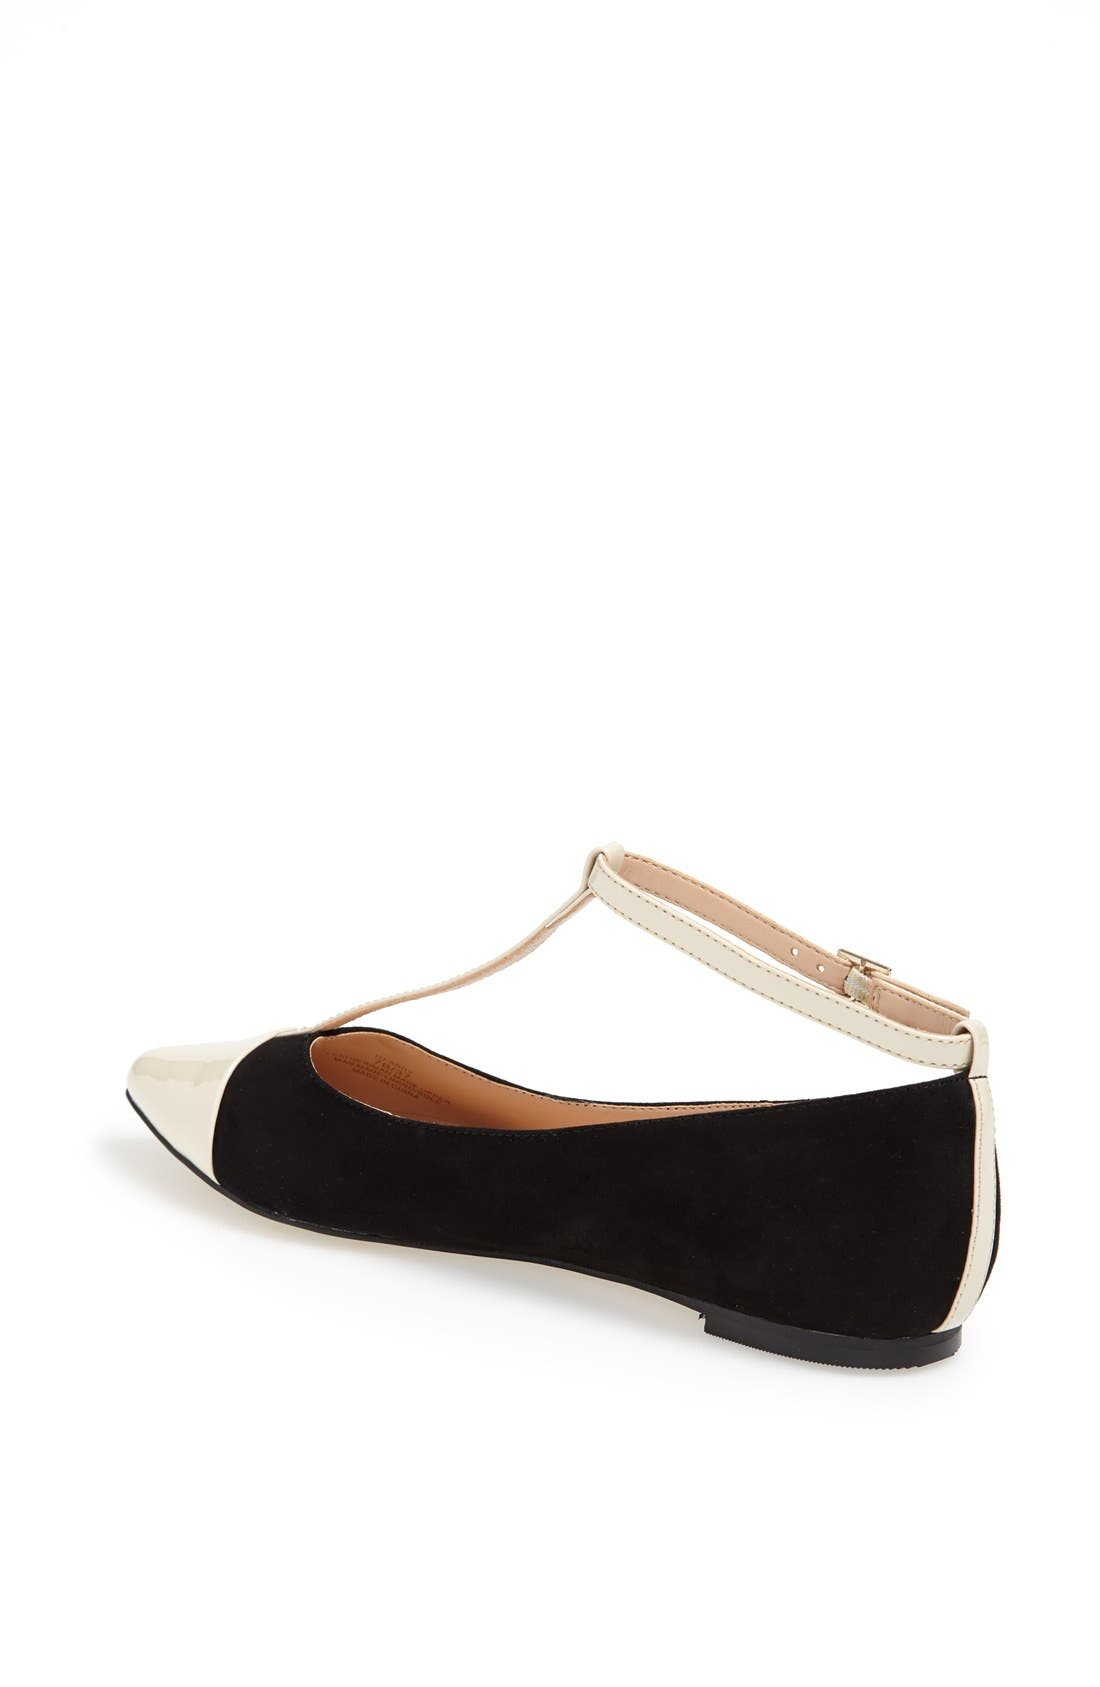 ,                             Julianne Hough for Sole Society 'Addy' Flat,                             Alternate thumbnail 6, color,                             001